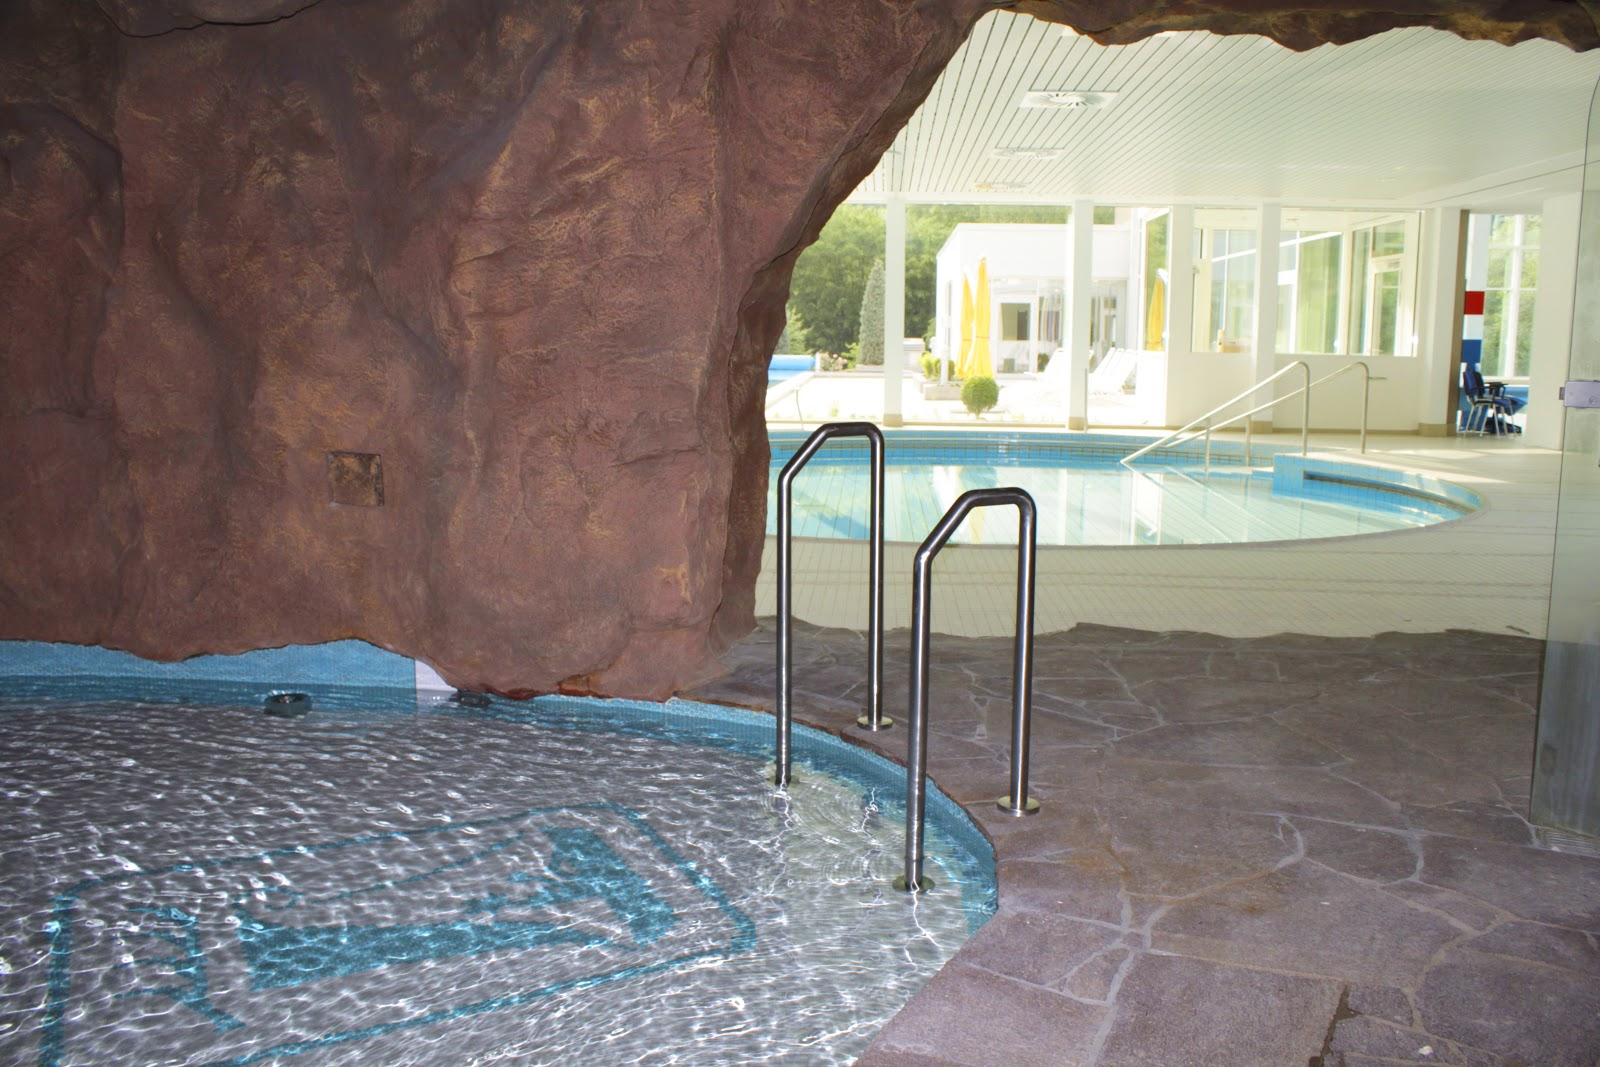 mag21-Tipps: Paracelsus-Therme in Bad Liebenzell: neue